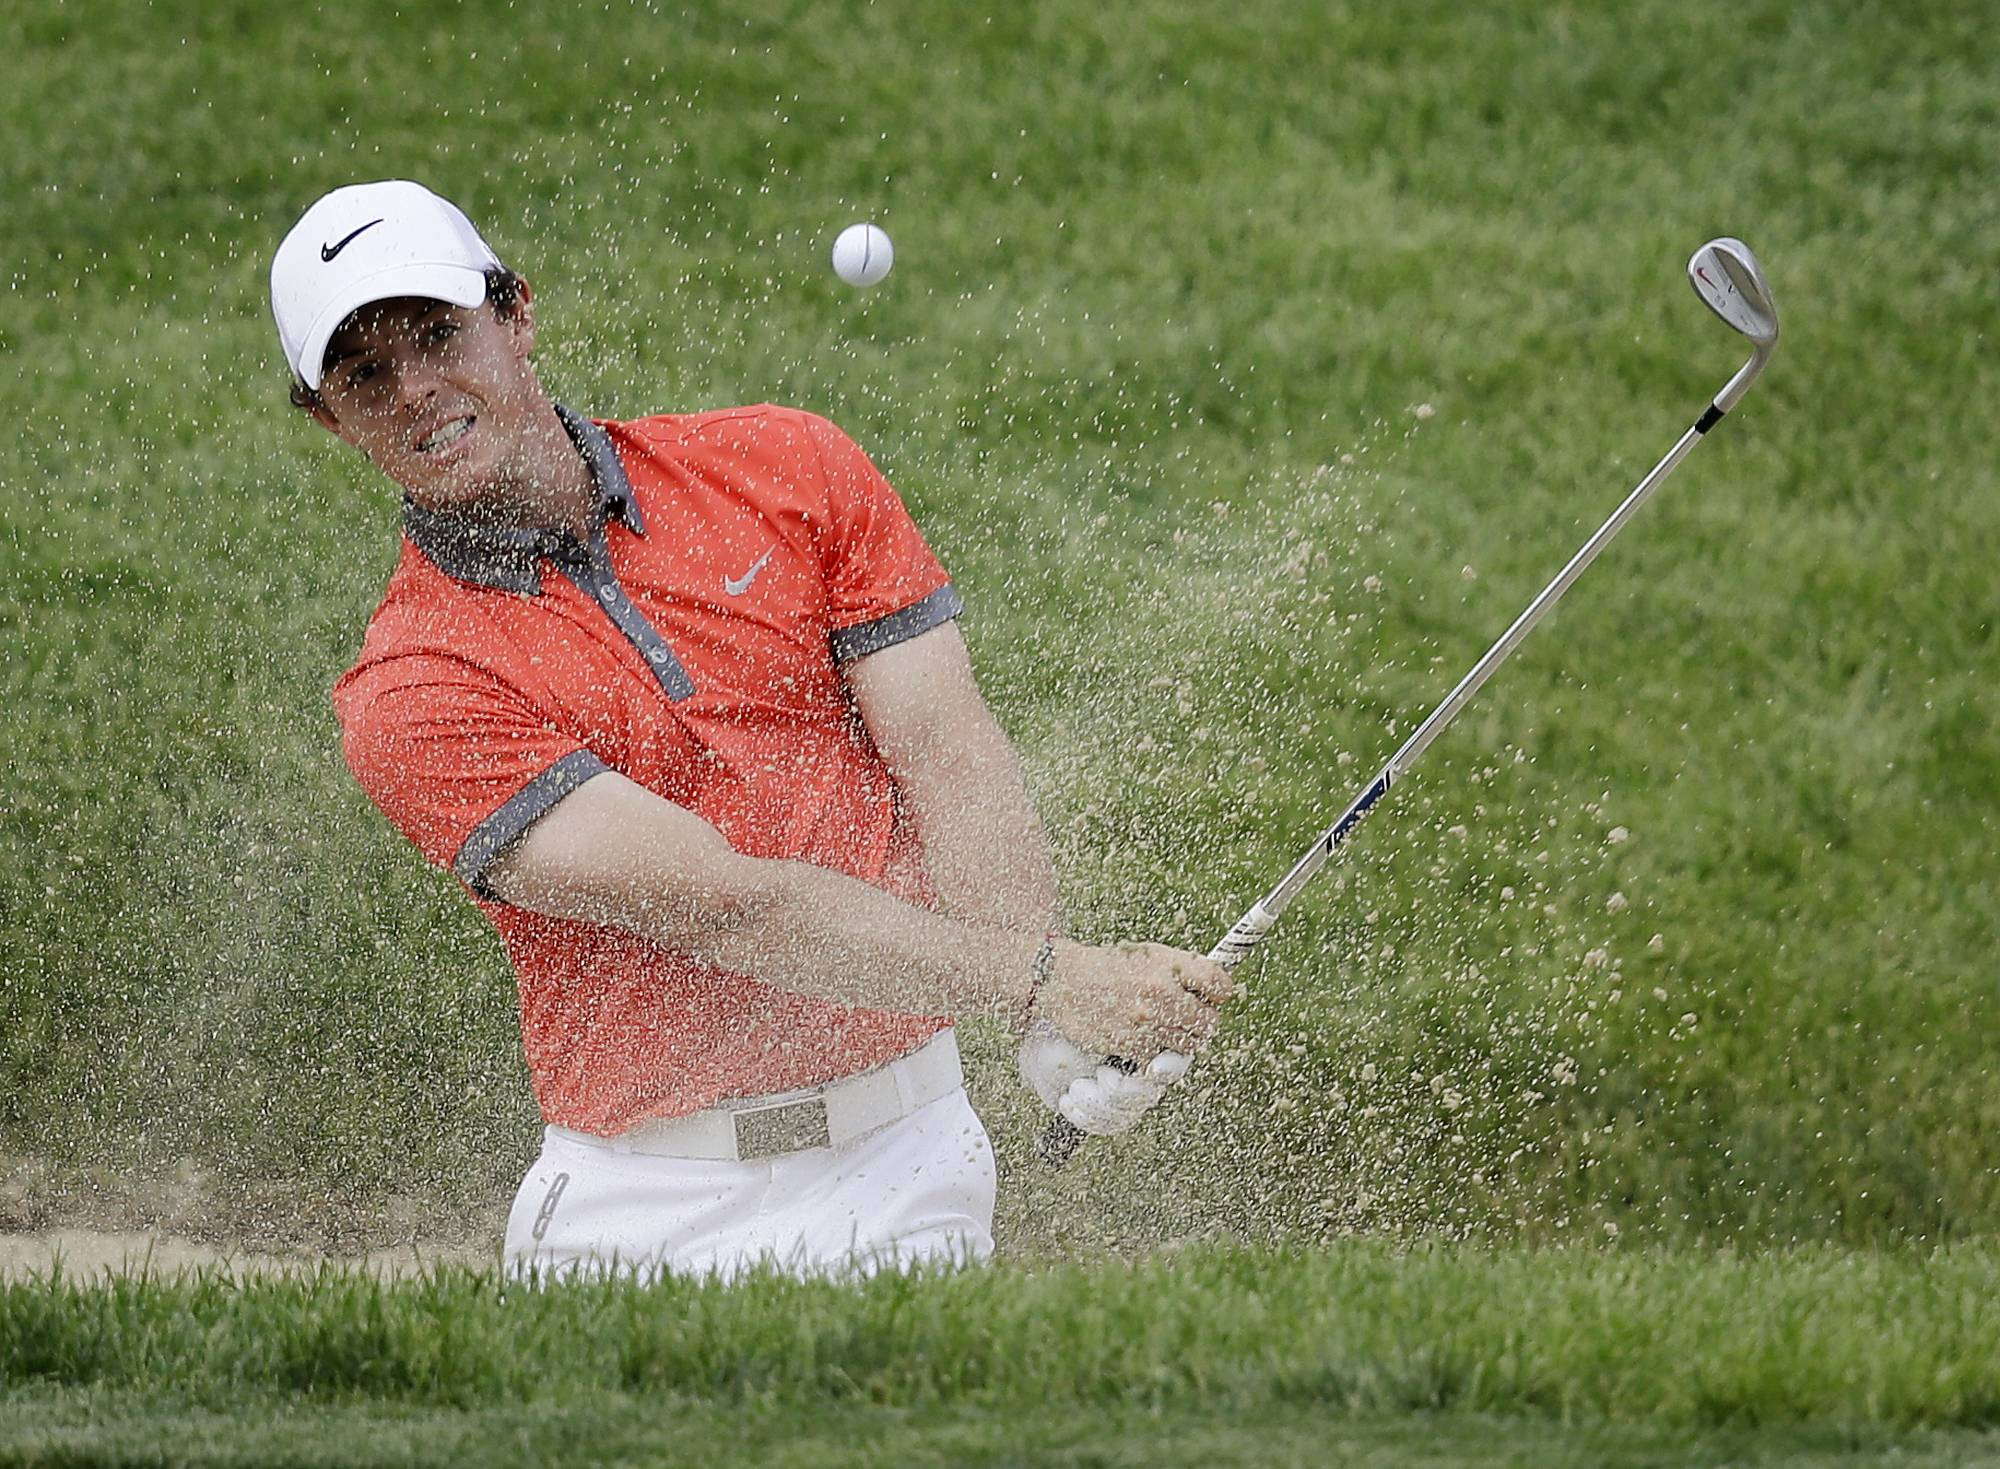 Whether it's his health or his personal life, Rory McIlroy is not easily distracted when he's on top of his game.McIlroy made two eagles and three birdies on the back nine at Muirfield Village -- along with a double bogey -- on his way to a 9-under 63 and a three-shot lead Thursday after the opening round of the Memorial.